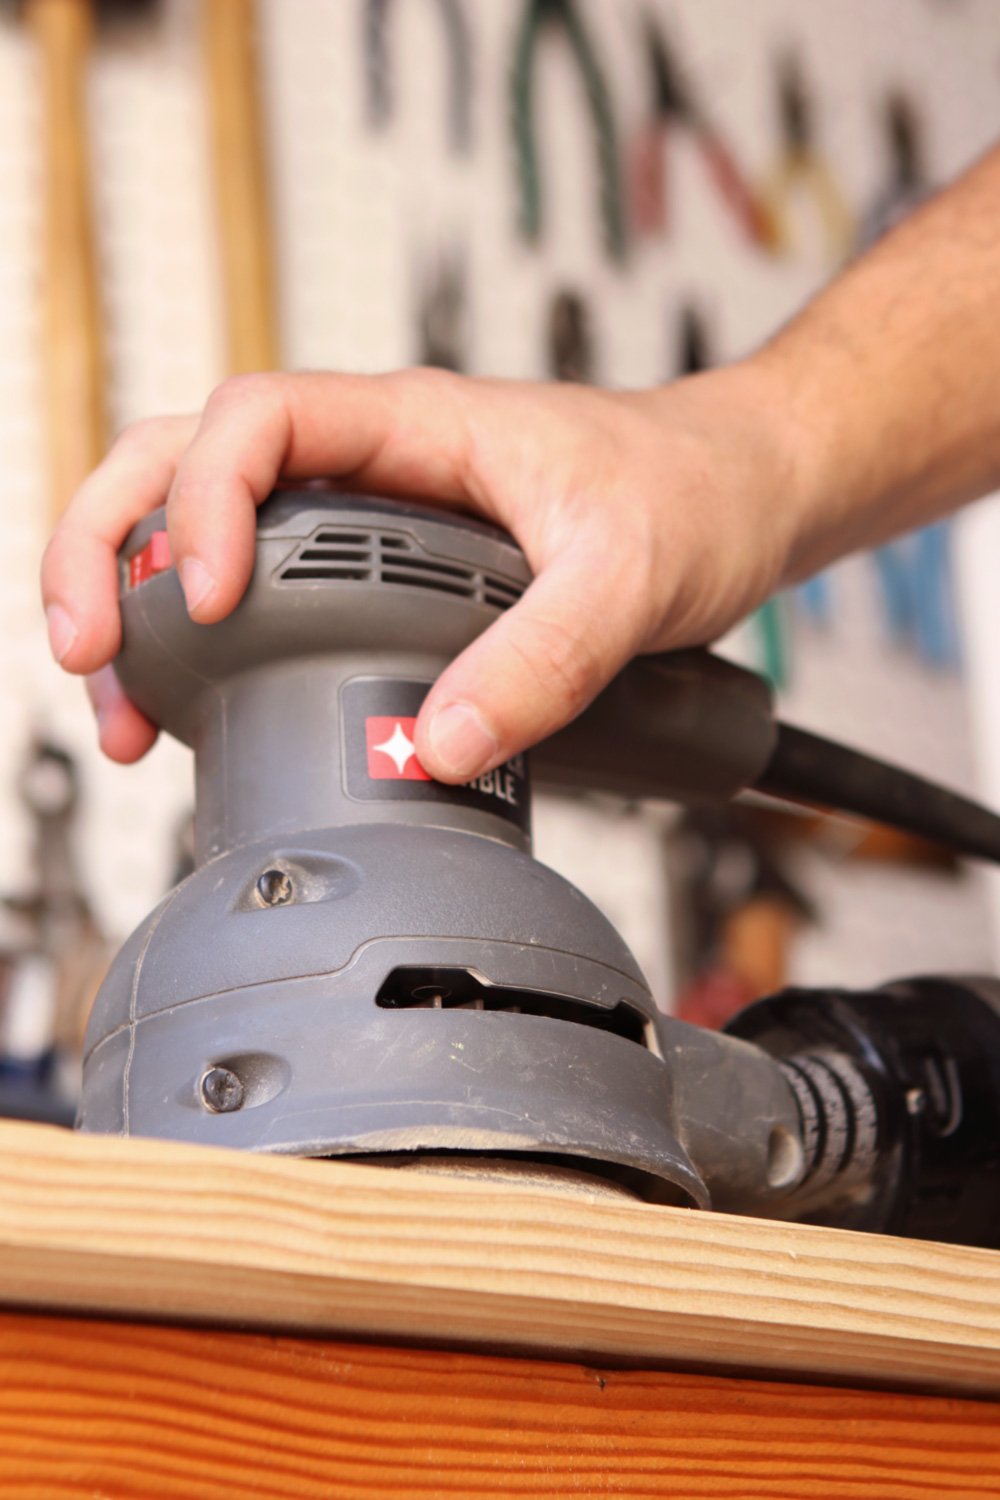 Random orbital sander mistakes - common errors and solutions